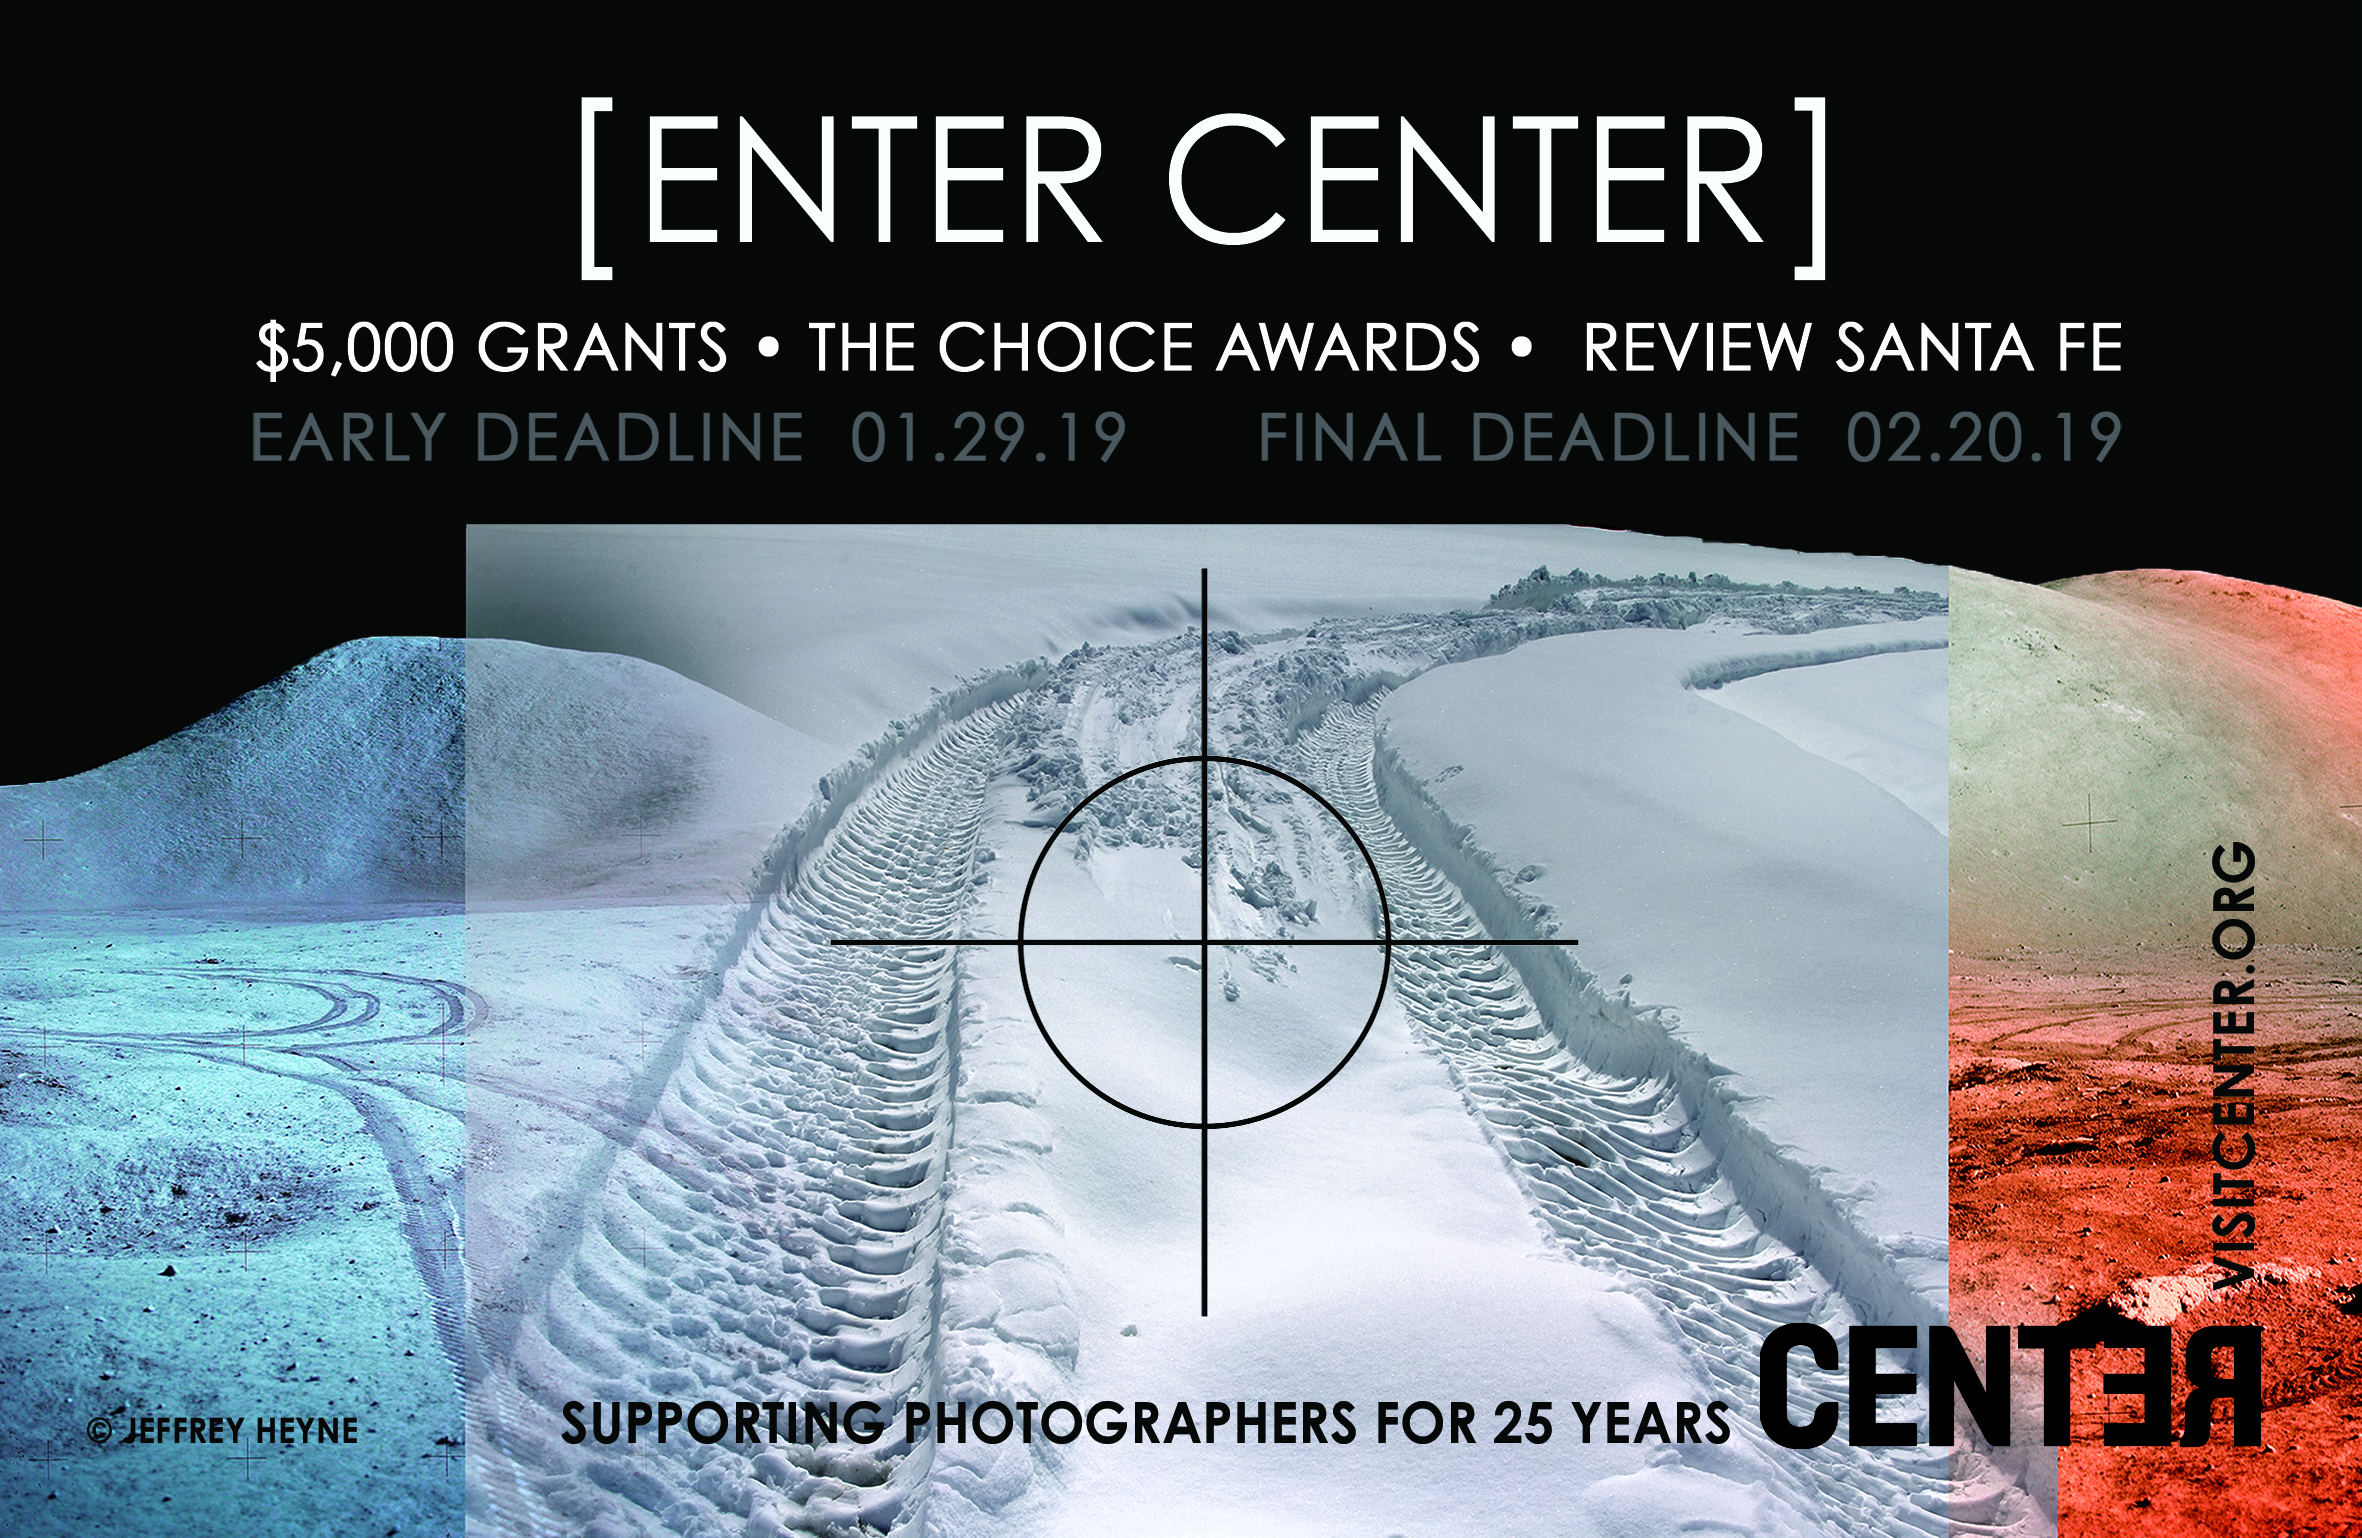 CENTERS 2019 Calls for Entry – Project Launch Grant